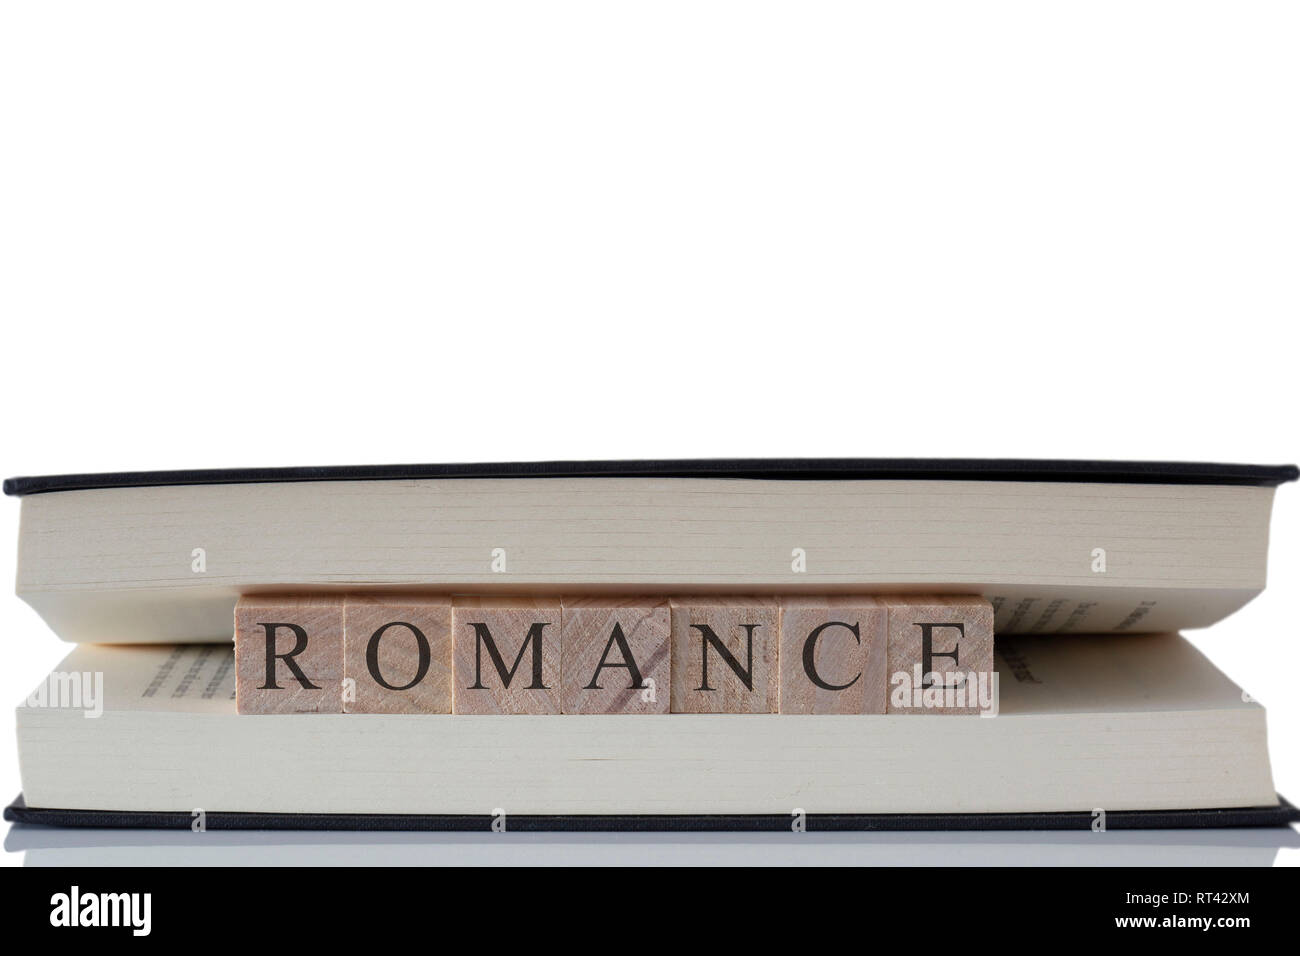 Romance written on wooden blocks inside a book isolated on a white background with reflection Stock Photo